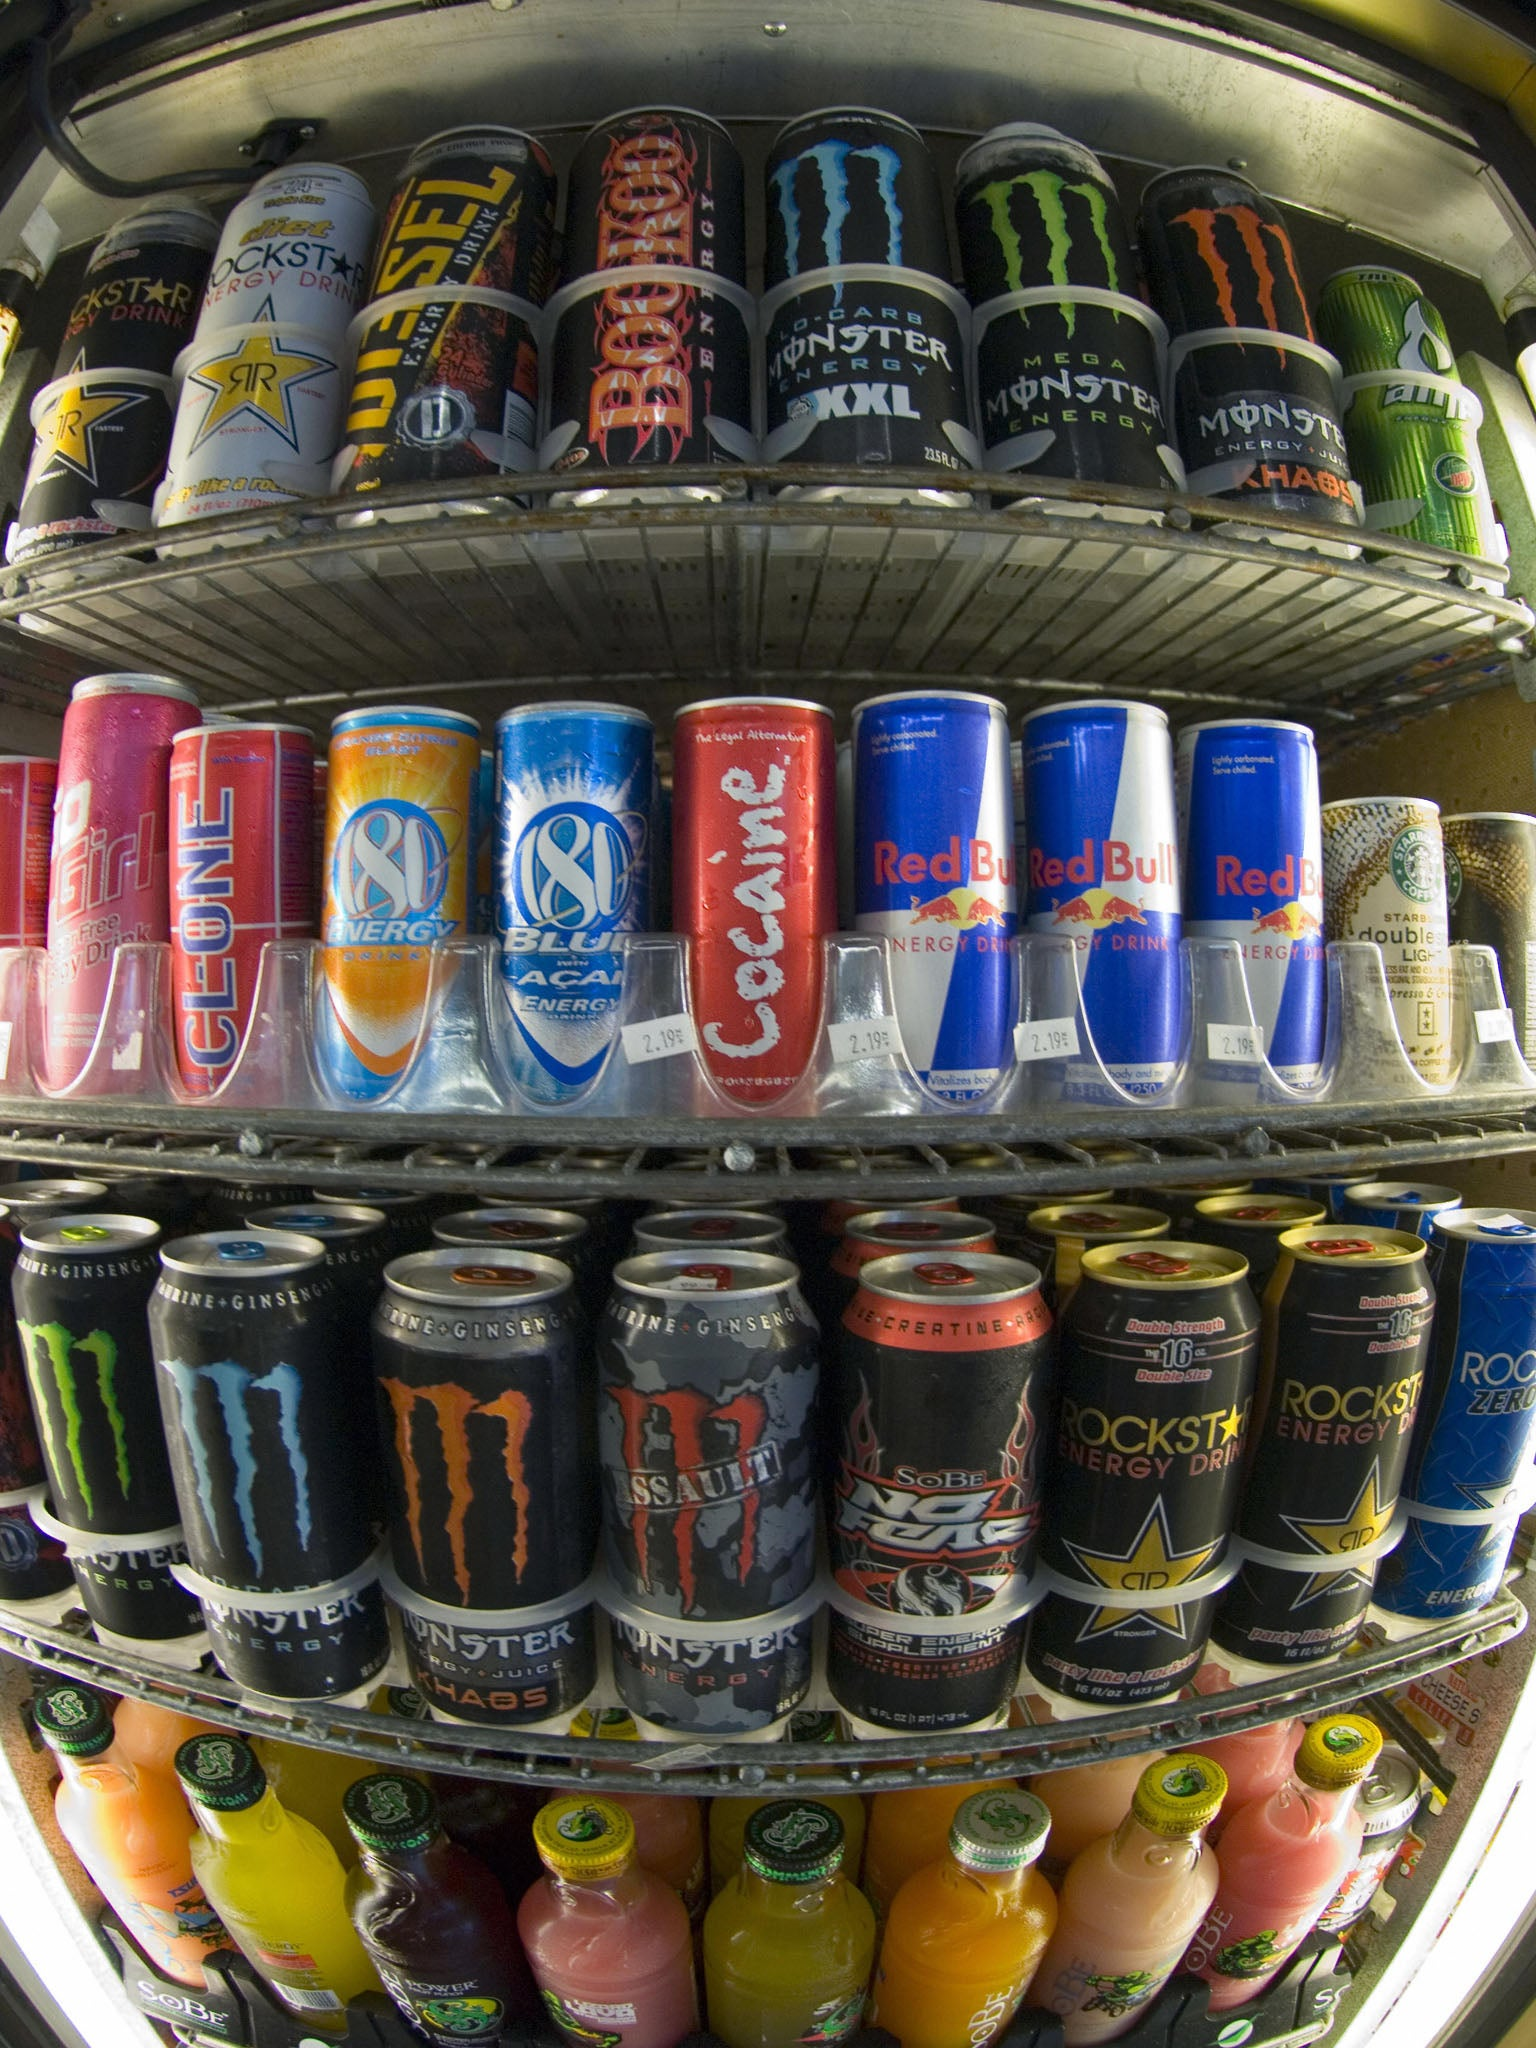 We students need to ditch our addiction to energy drinks